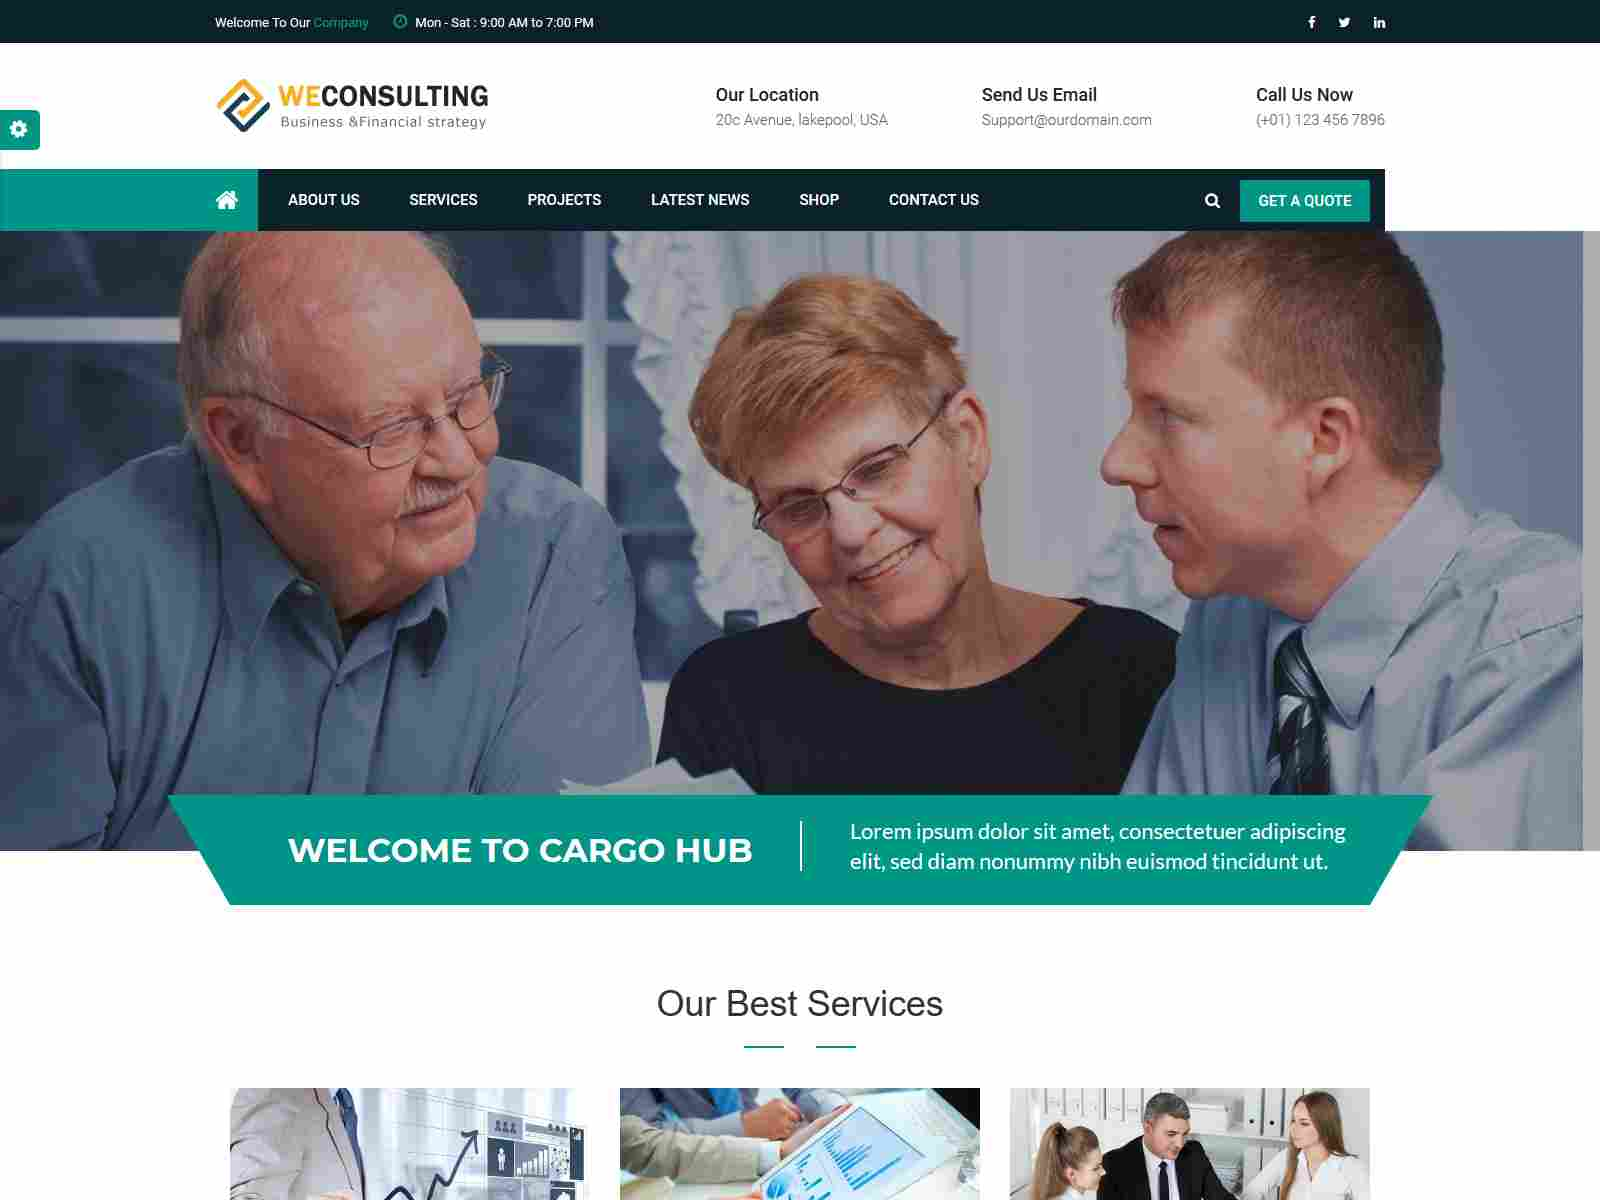 WECONSULTING - Responsive BootStrap Drupal 8.8 Theme